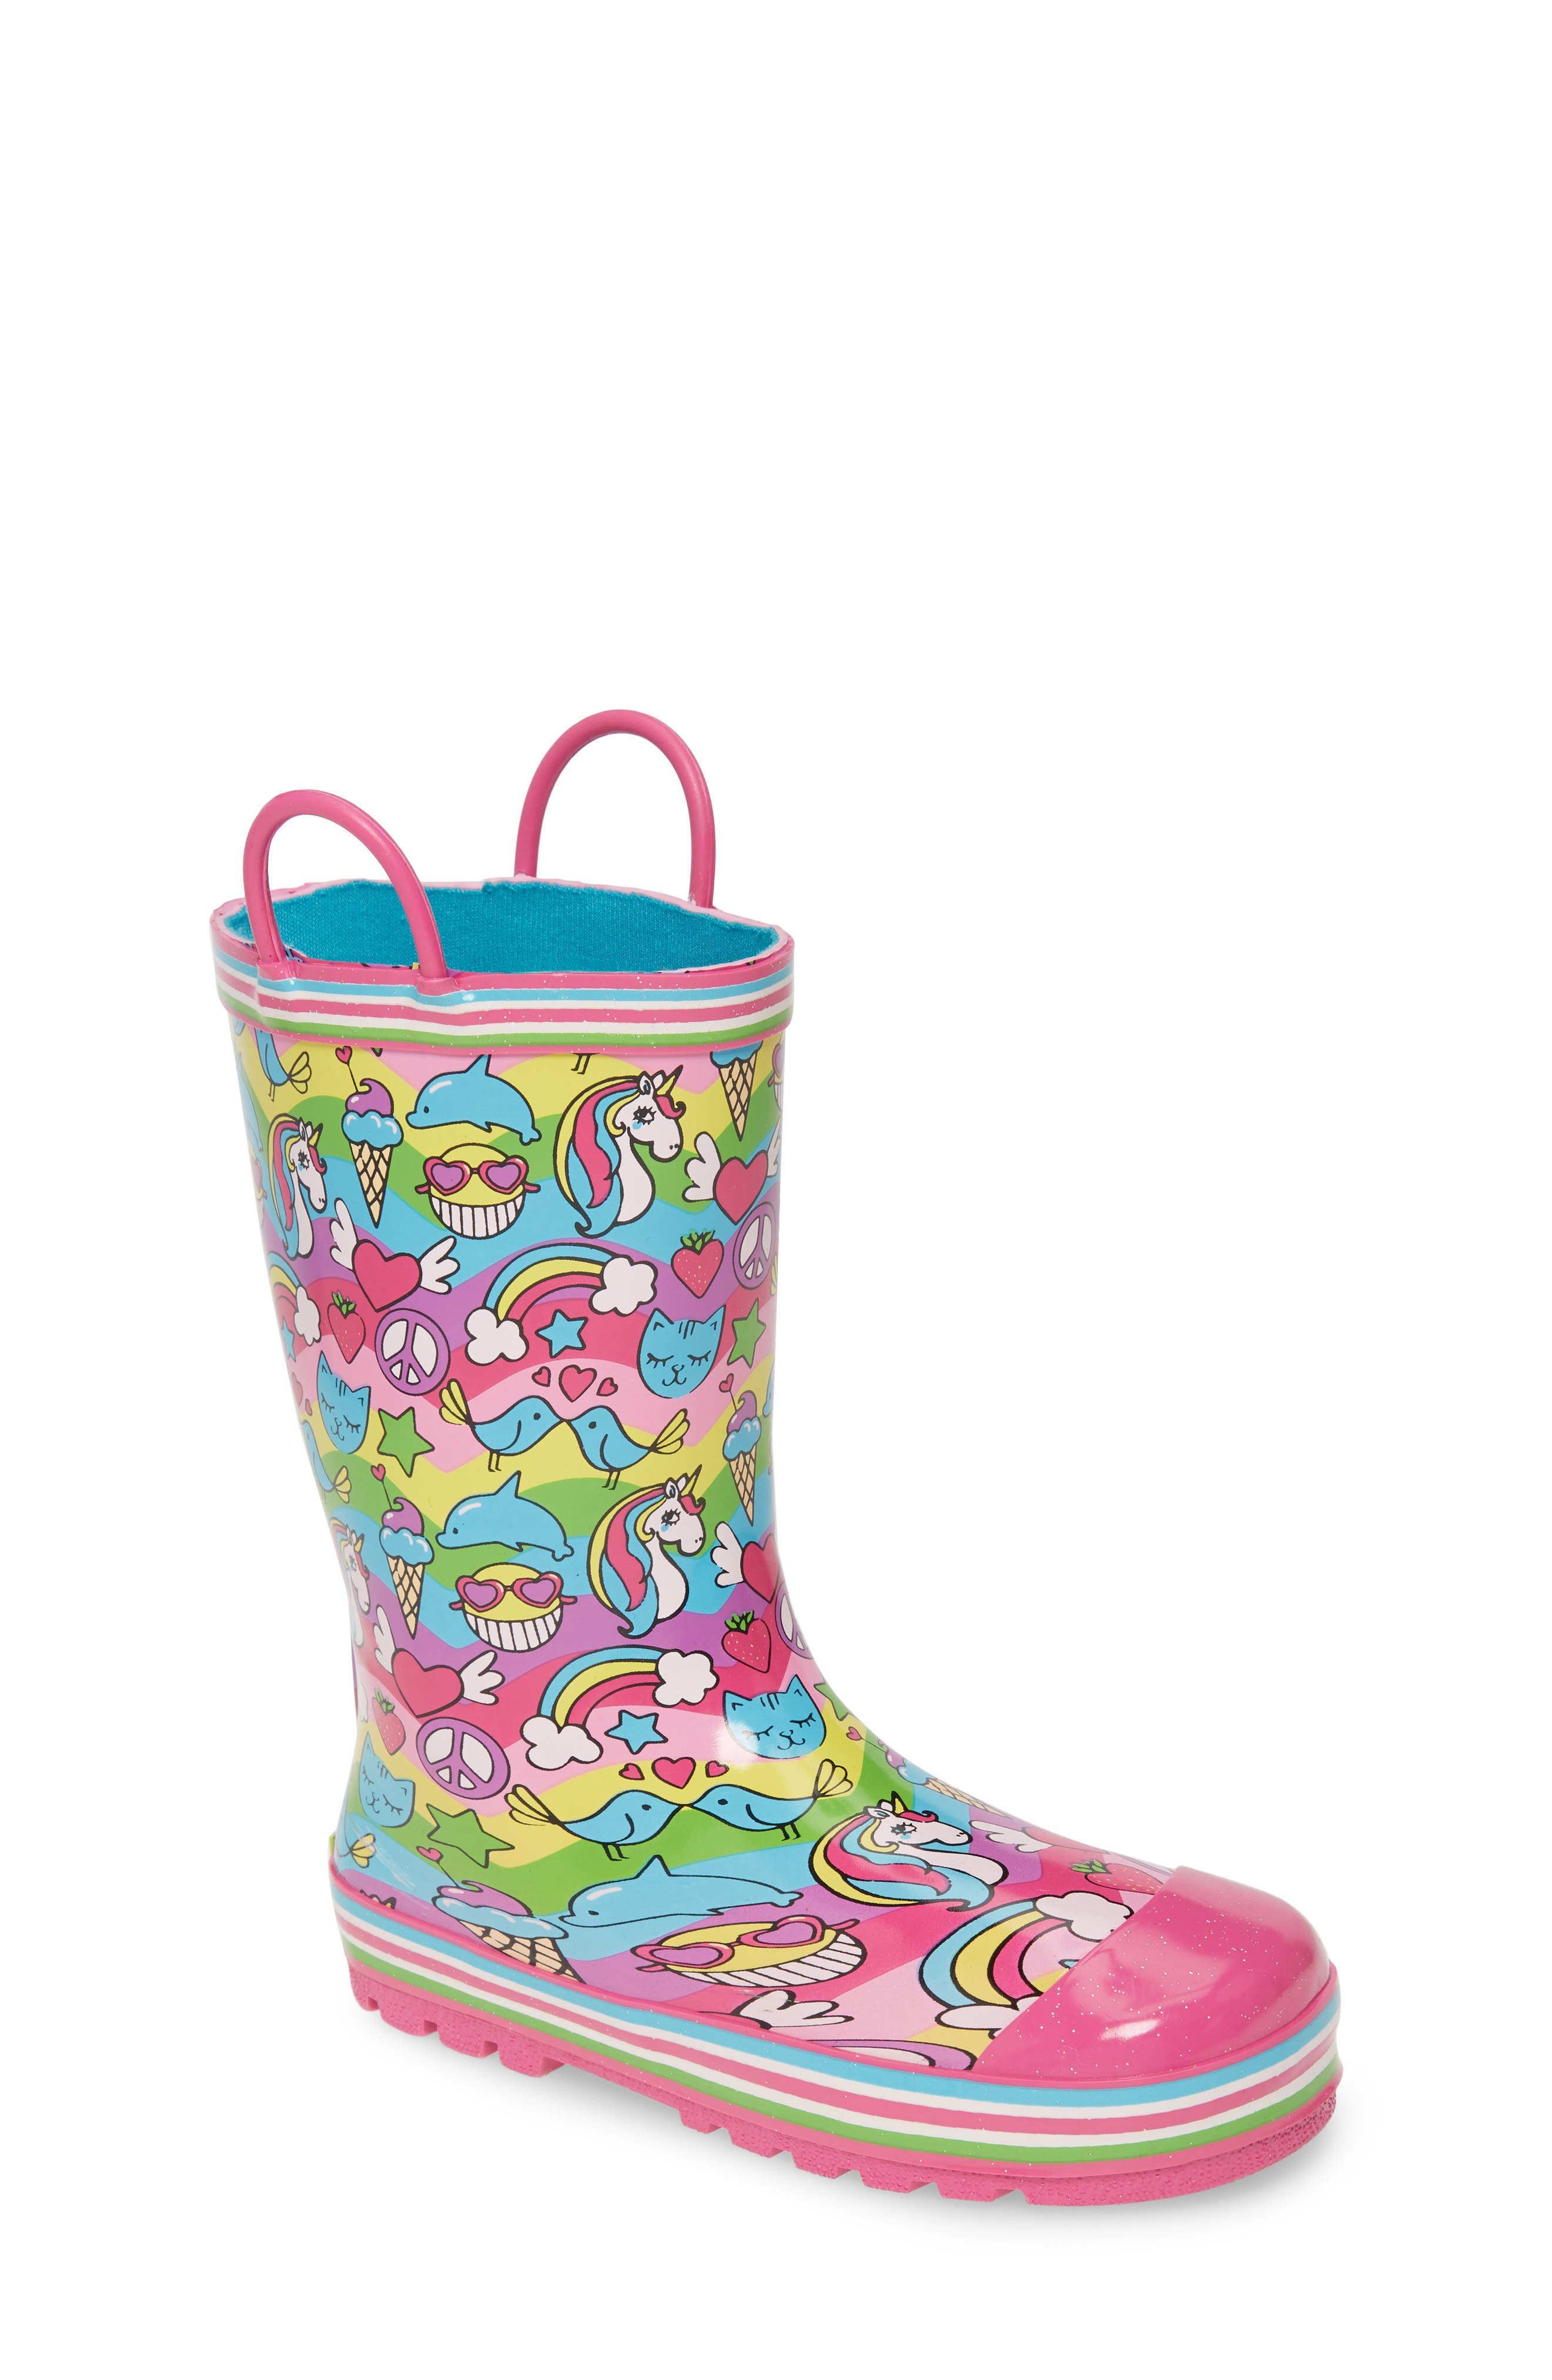 Image of Western Chief 2 Cool Rain Boot